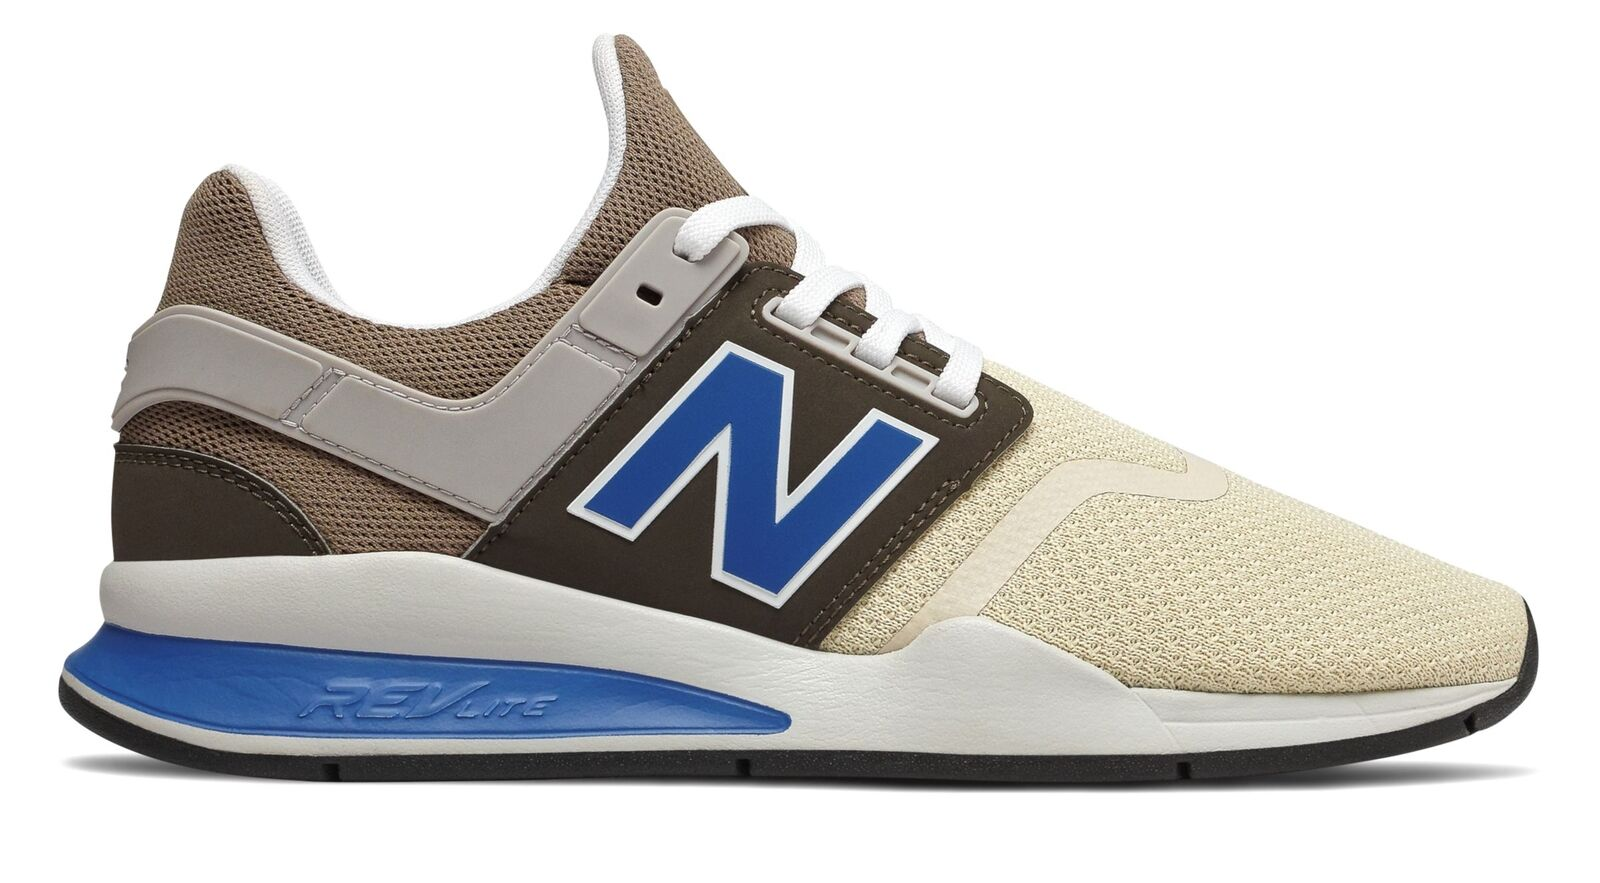 New Balance Male Men's 247 Adult Lifestyle Comfort shoes Stylish Tan With Tan